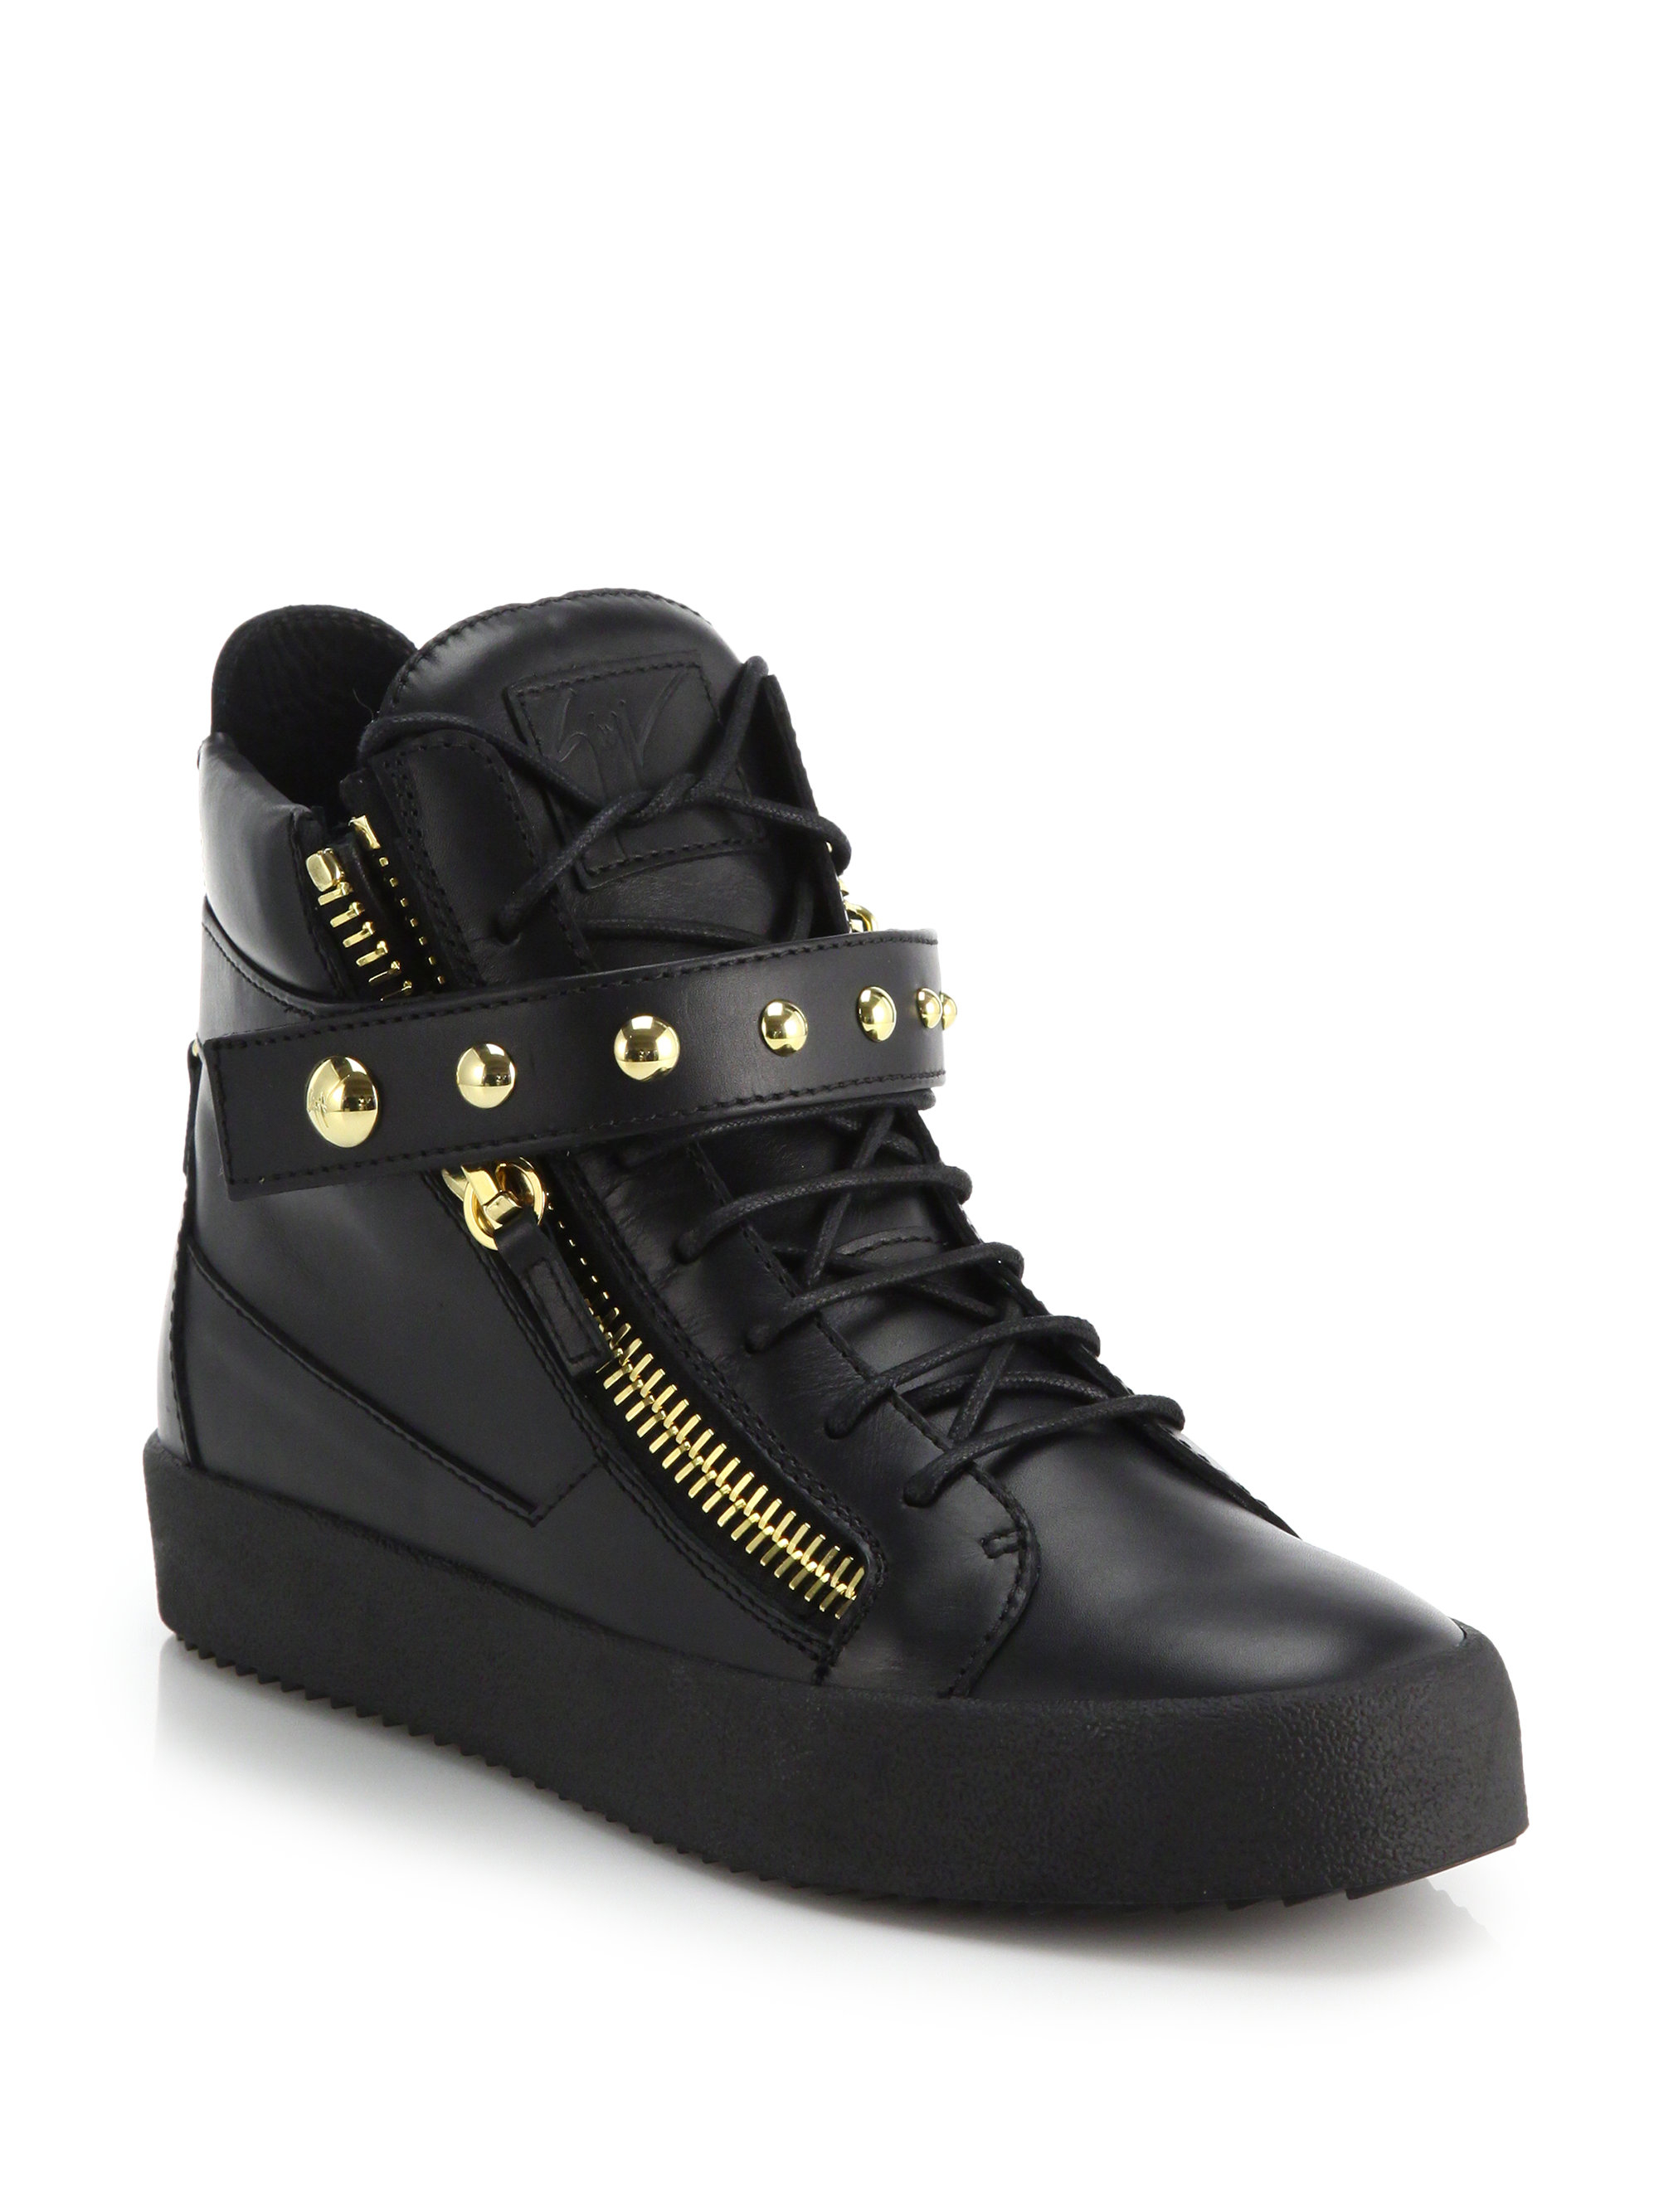 giuseppe zanotti studded leather high top sneakers